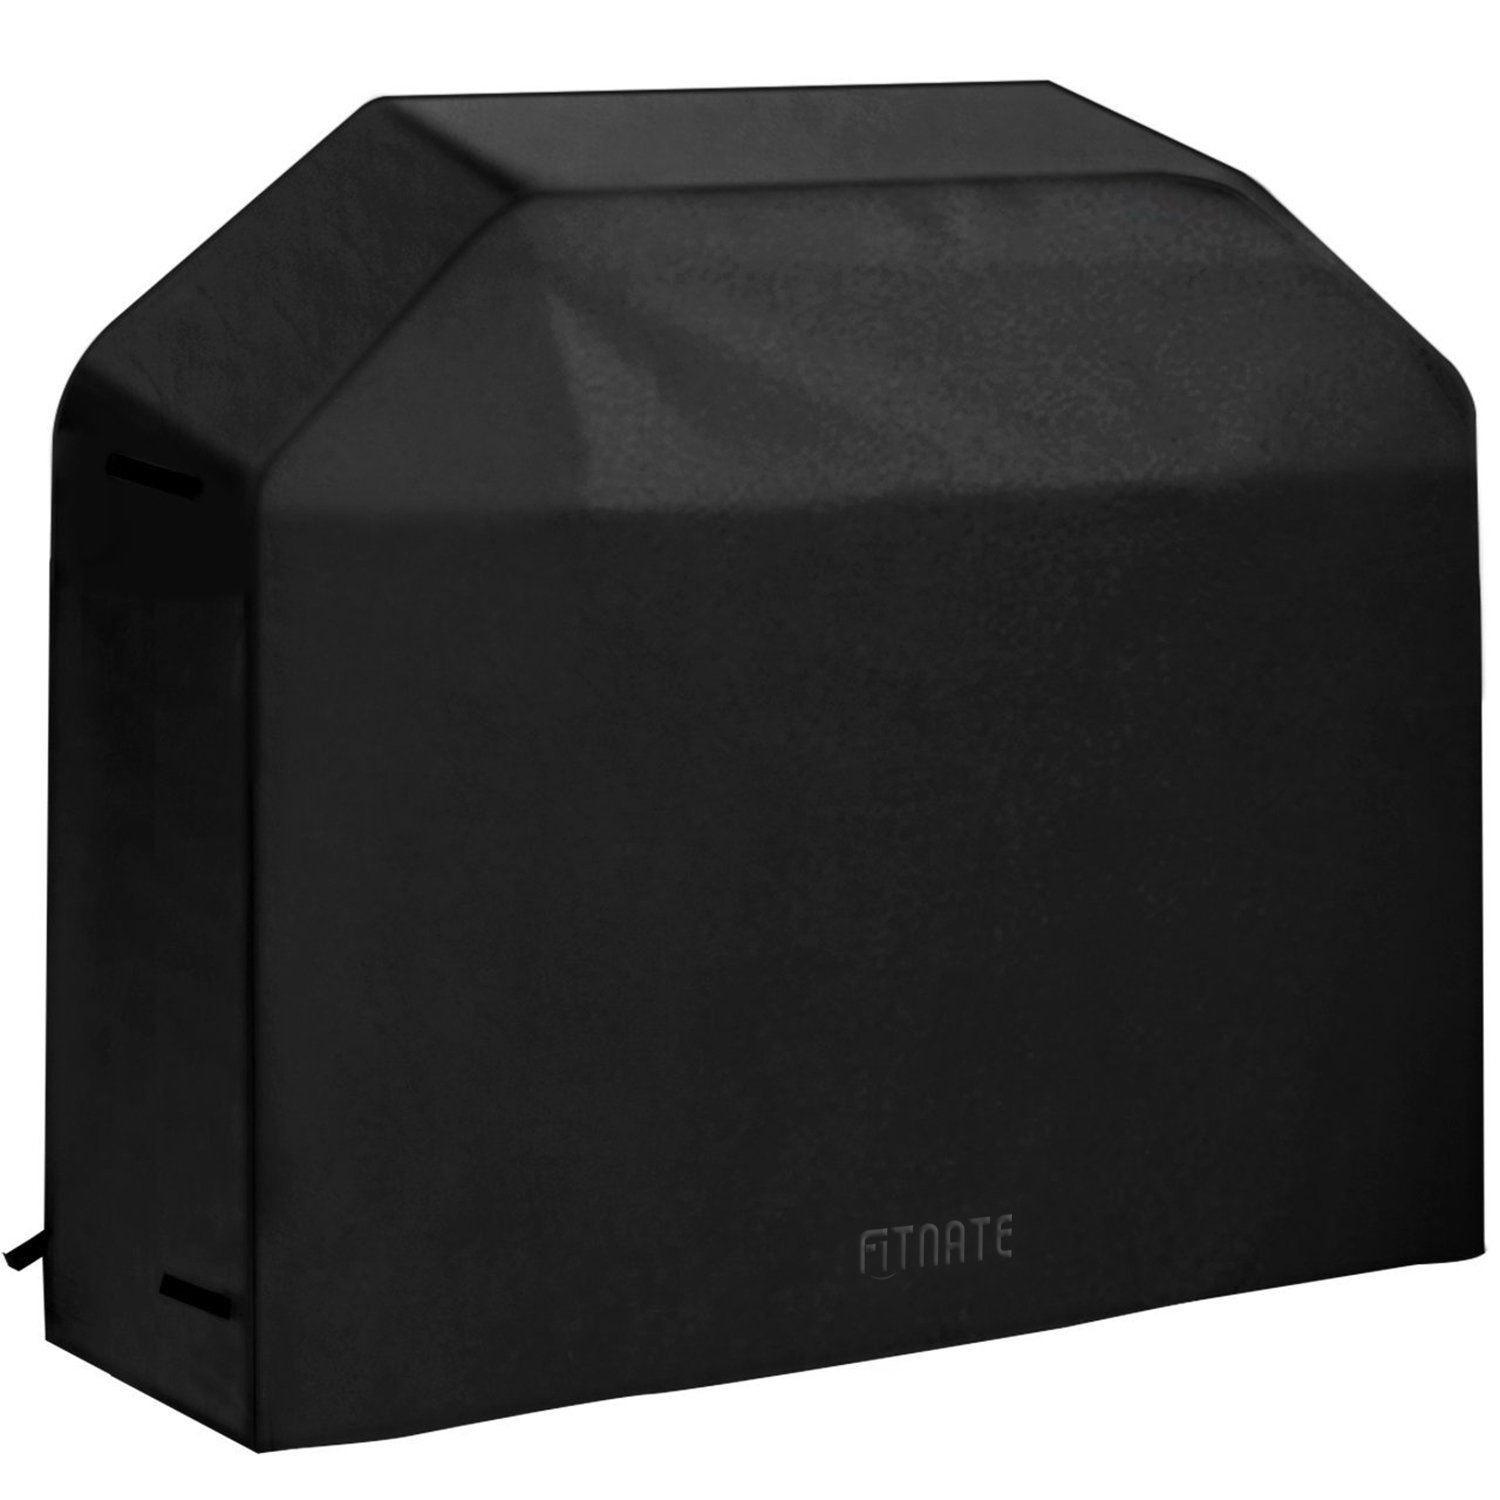 Fitnate Gas Grill Cover Waterproof Oxford fabric BBQ Grill Cover with PVC Layer 600D Heavy Duty , Velcro Straps and Handles UV Protection & Snow-Resistant & Water-Resistant & Dust-Resistant (58-inch)